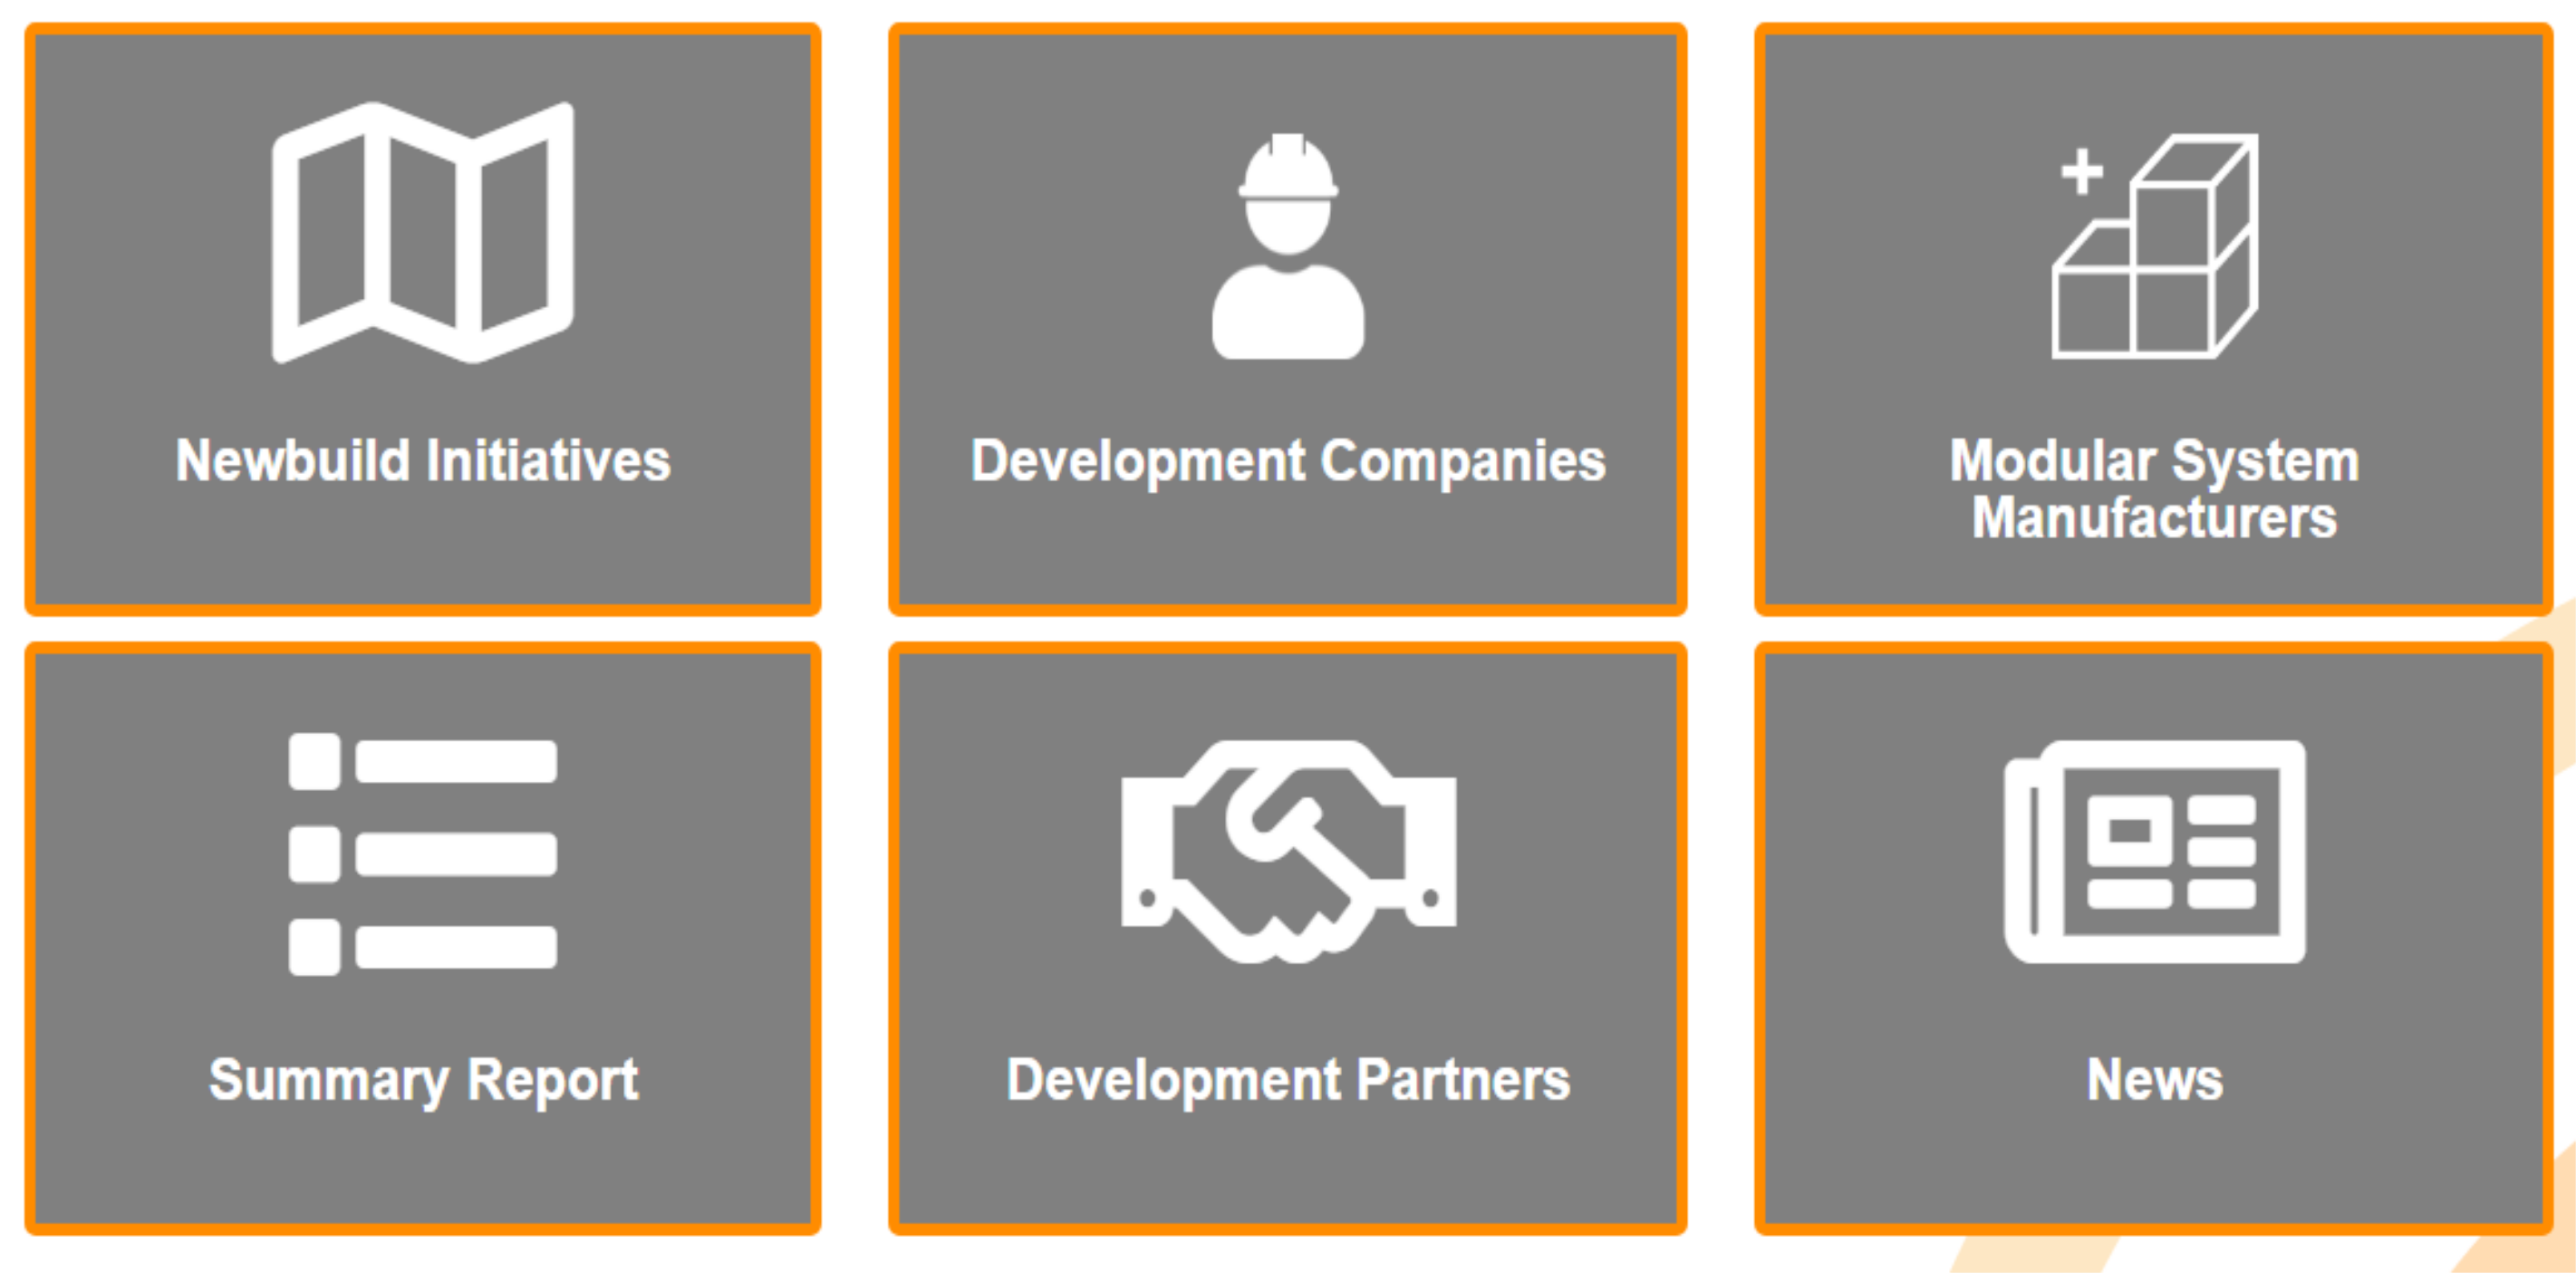 Newbuild - Development Companies - Strategic Partnerships